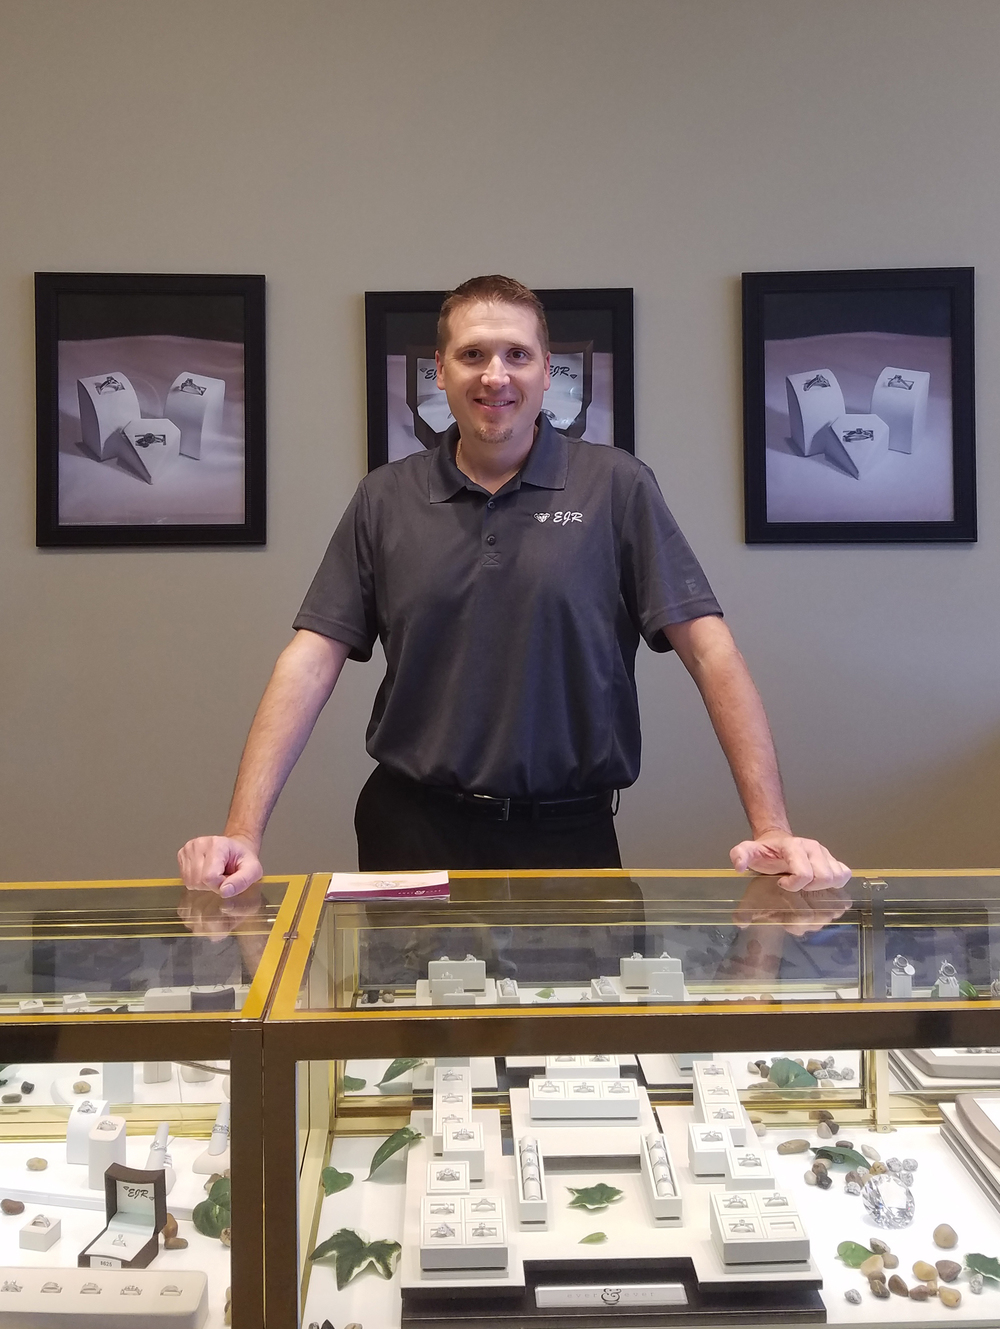 Bill is the owner of EJR. He is a certified jeweler with 20 years of service.